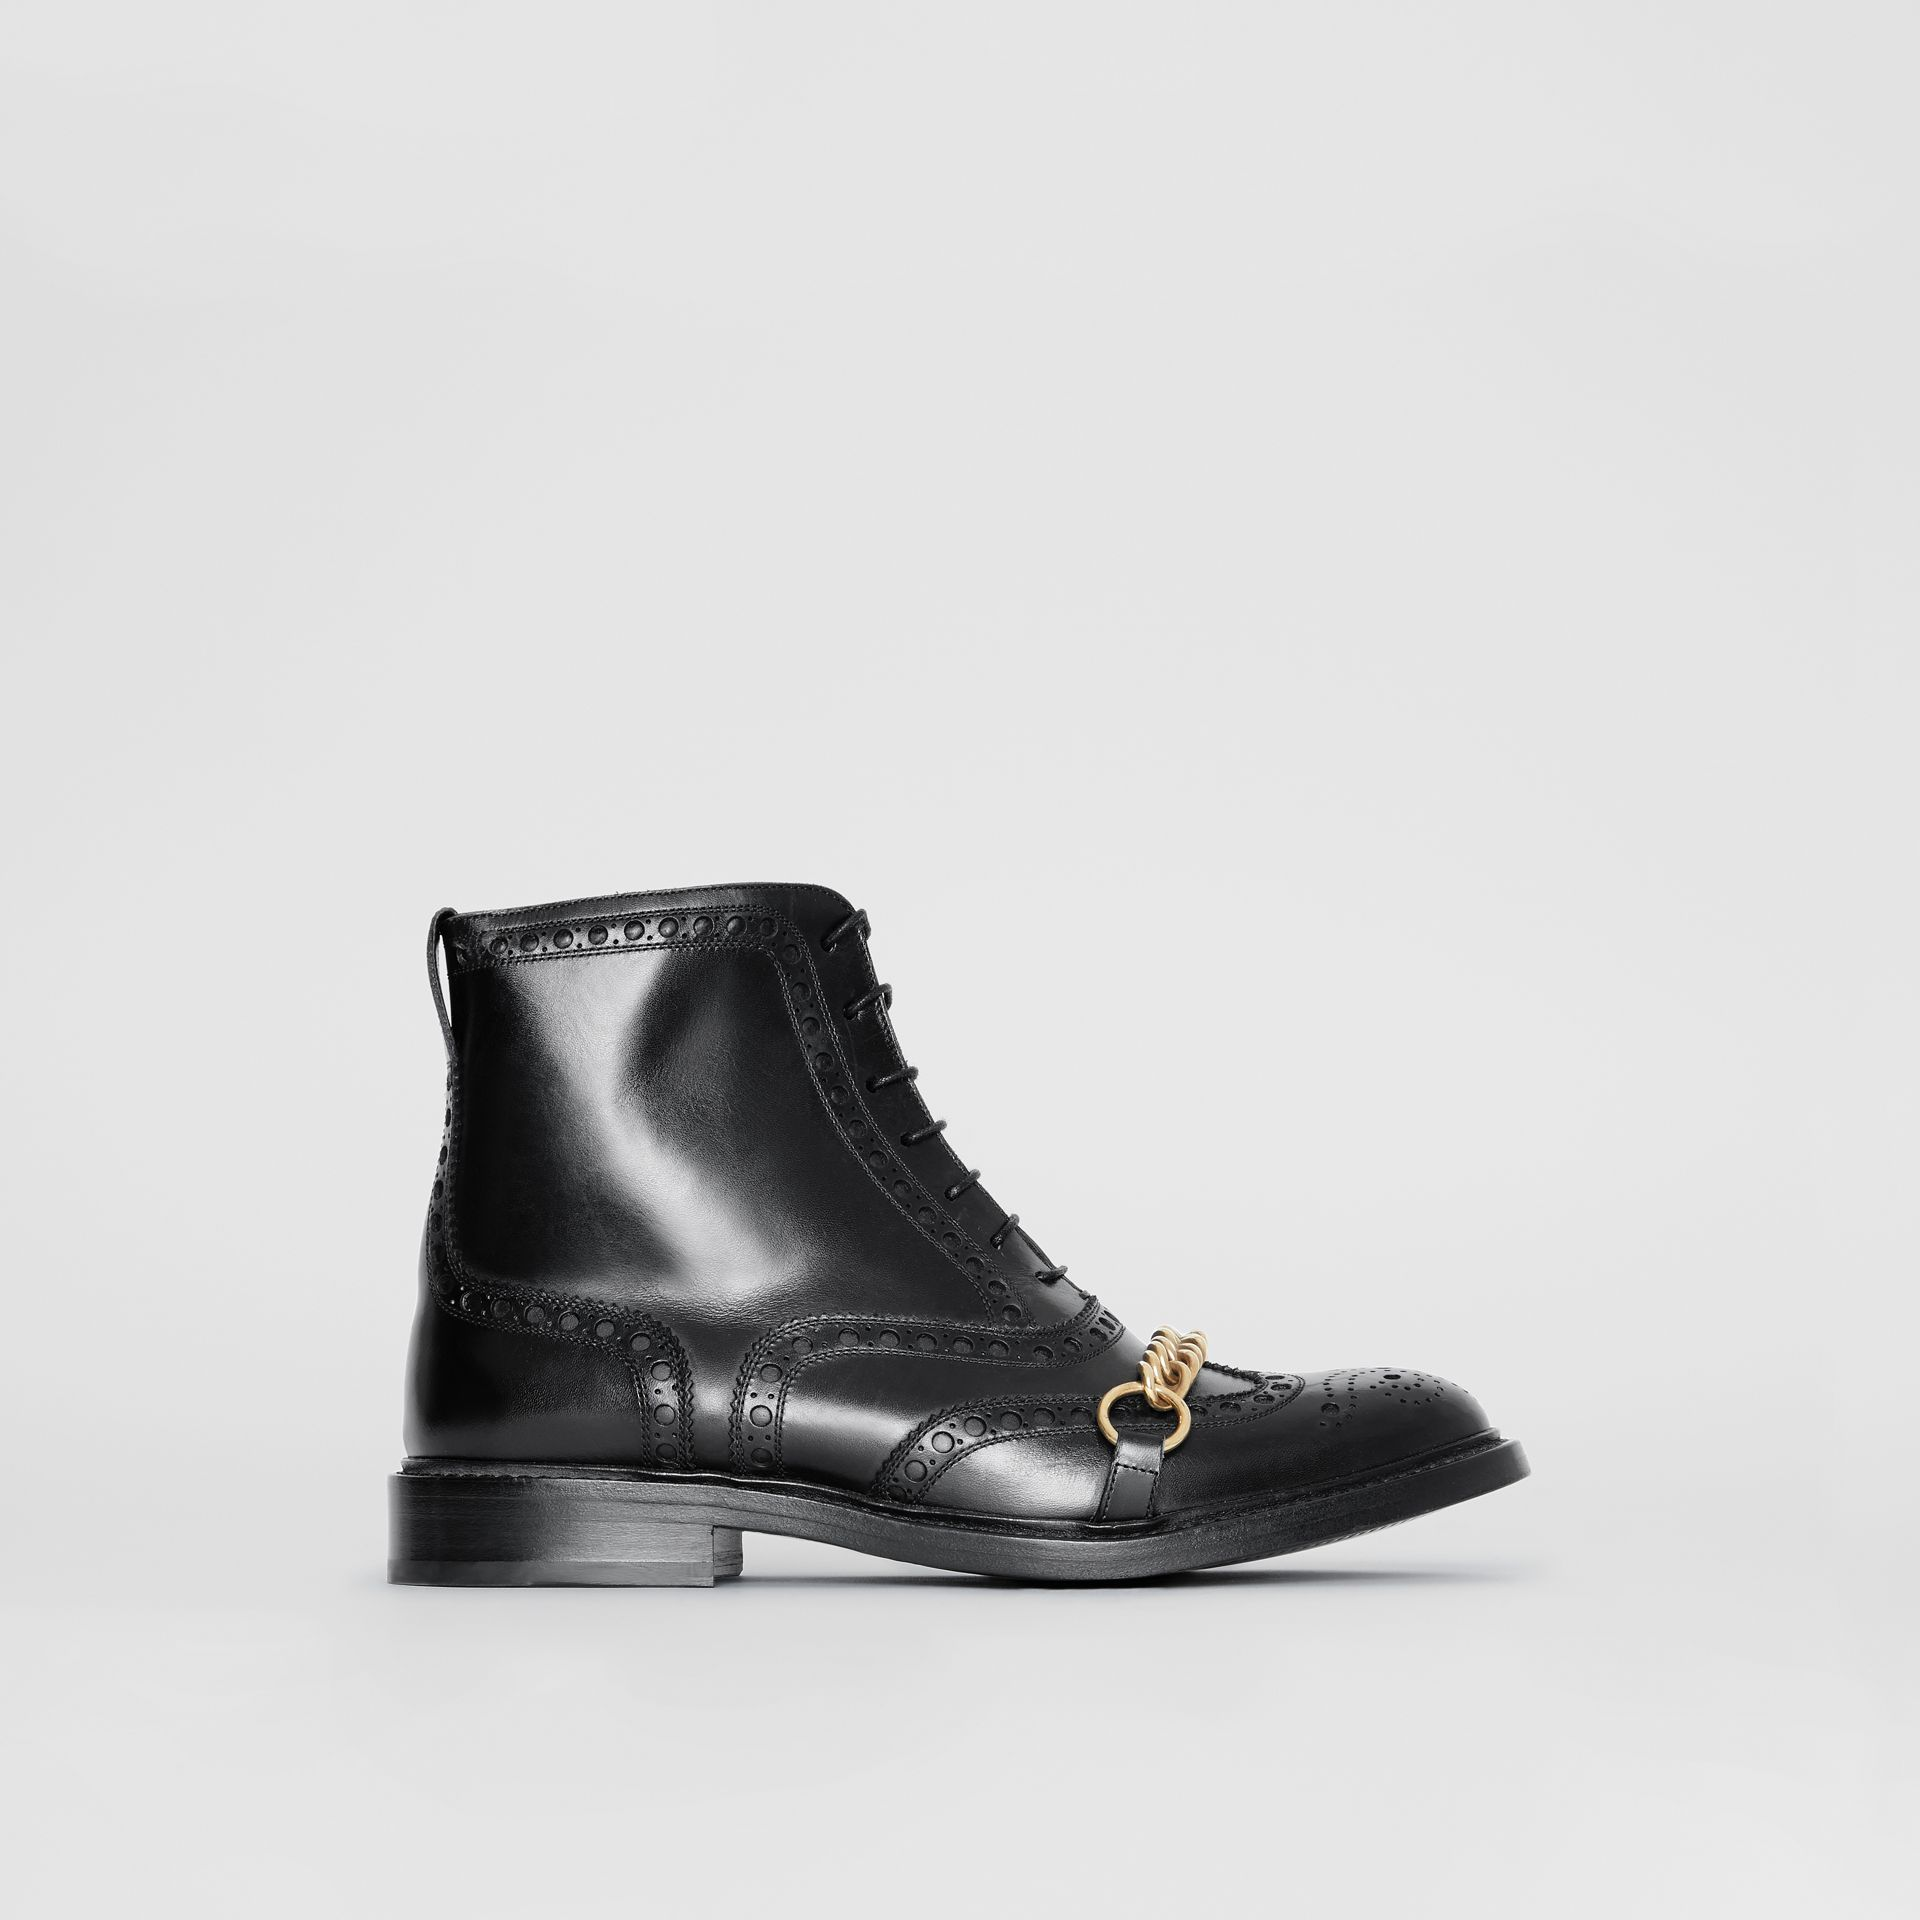 Link and Brogue Detail Leather Boots in Black - Women | Burberry - gallery image 4